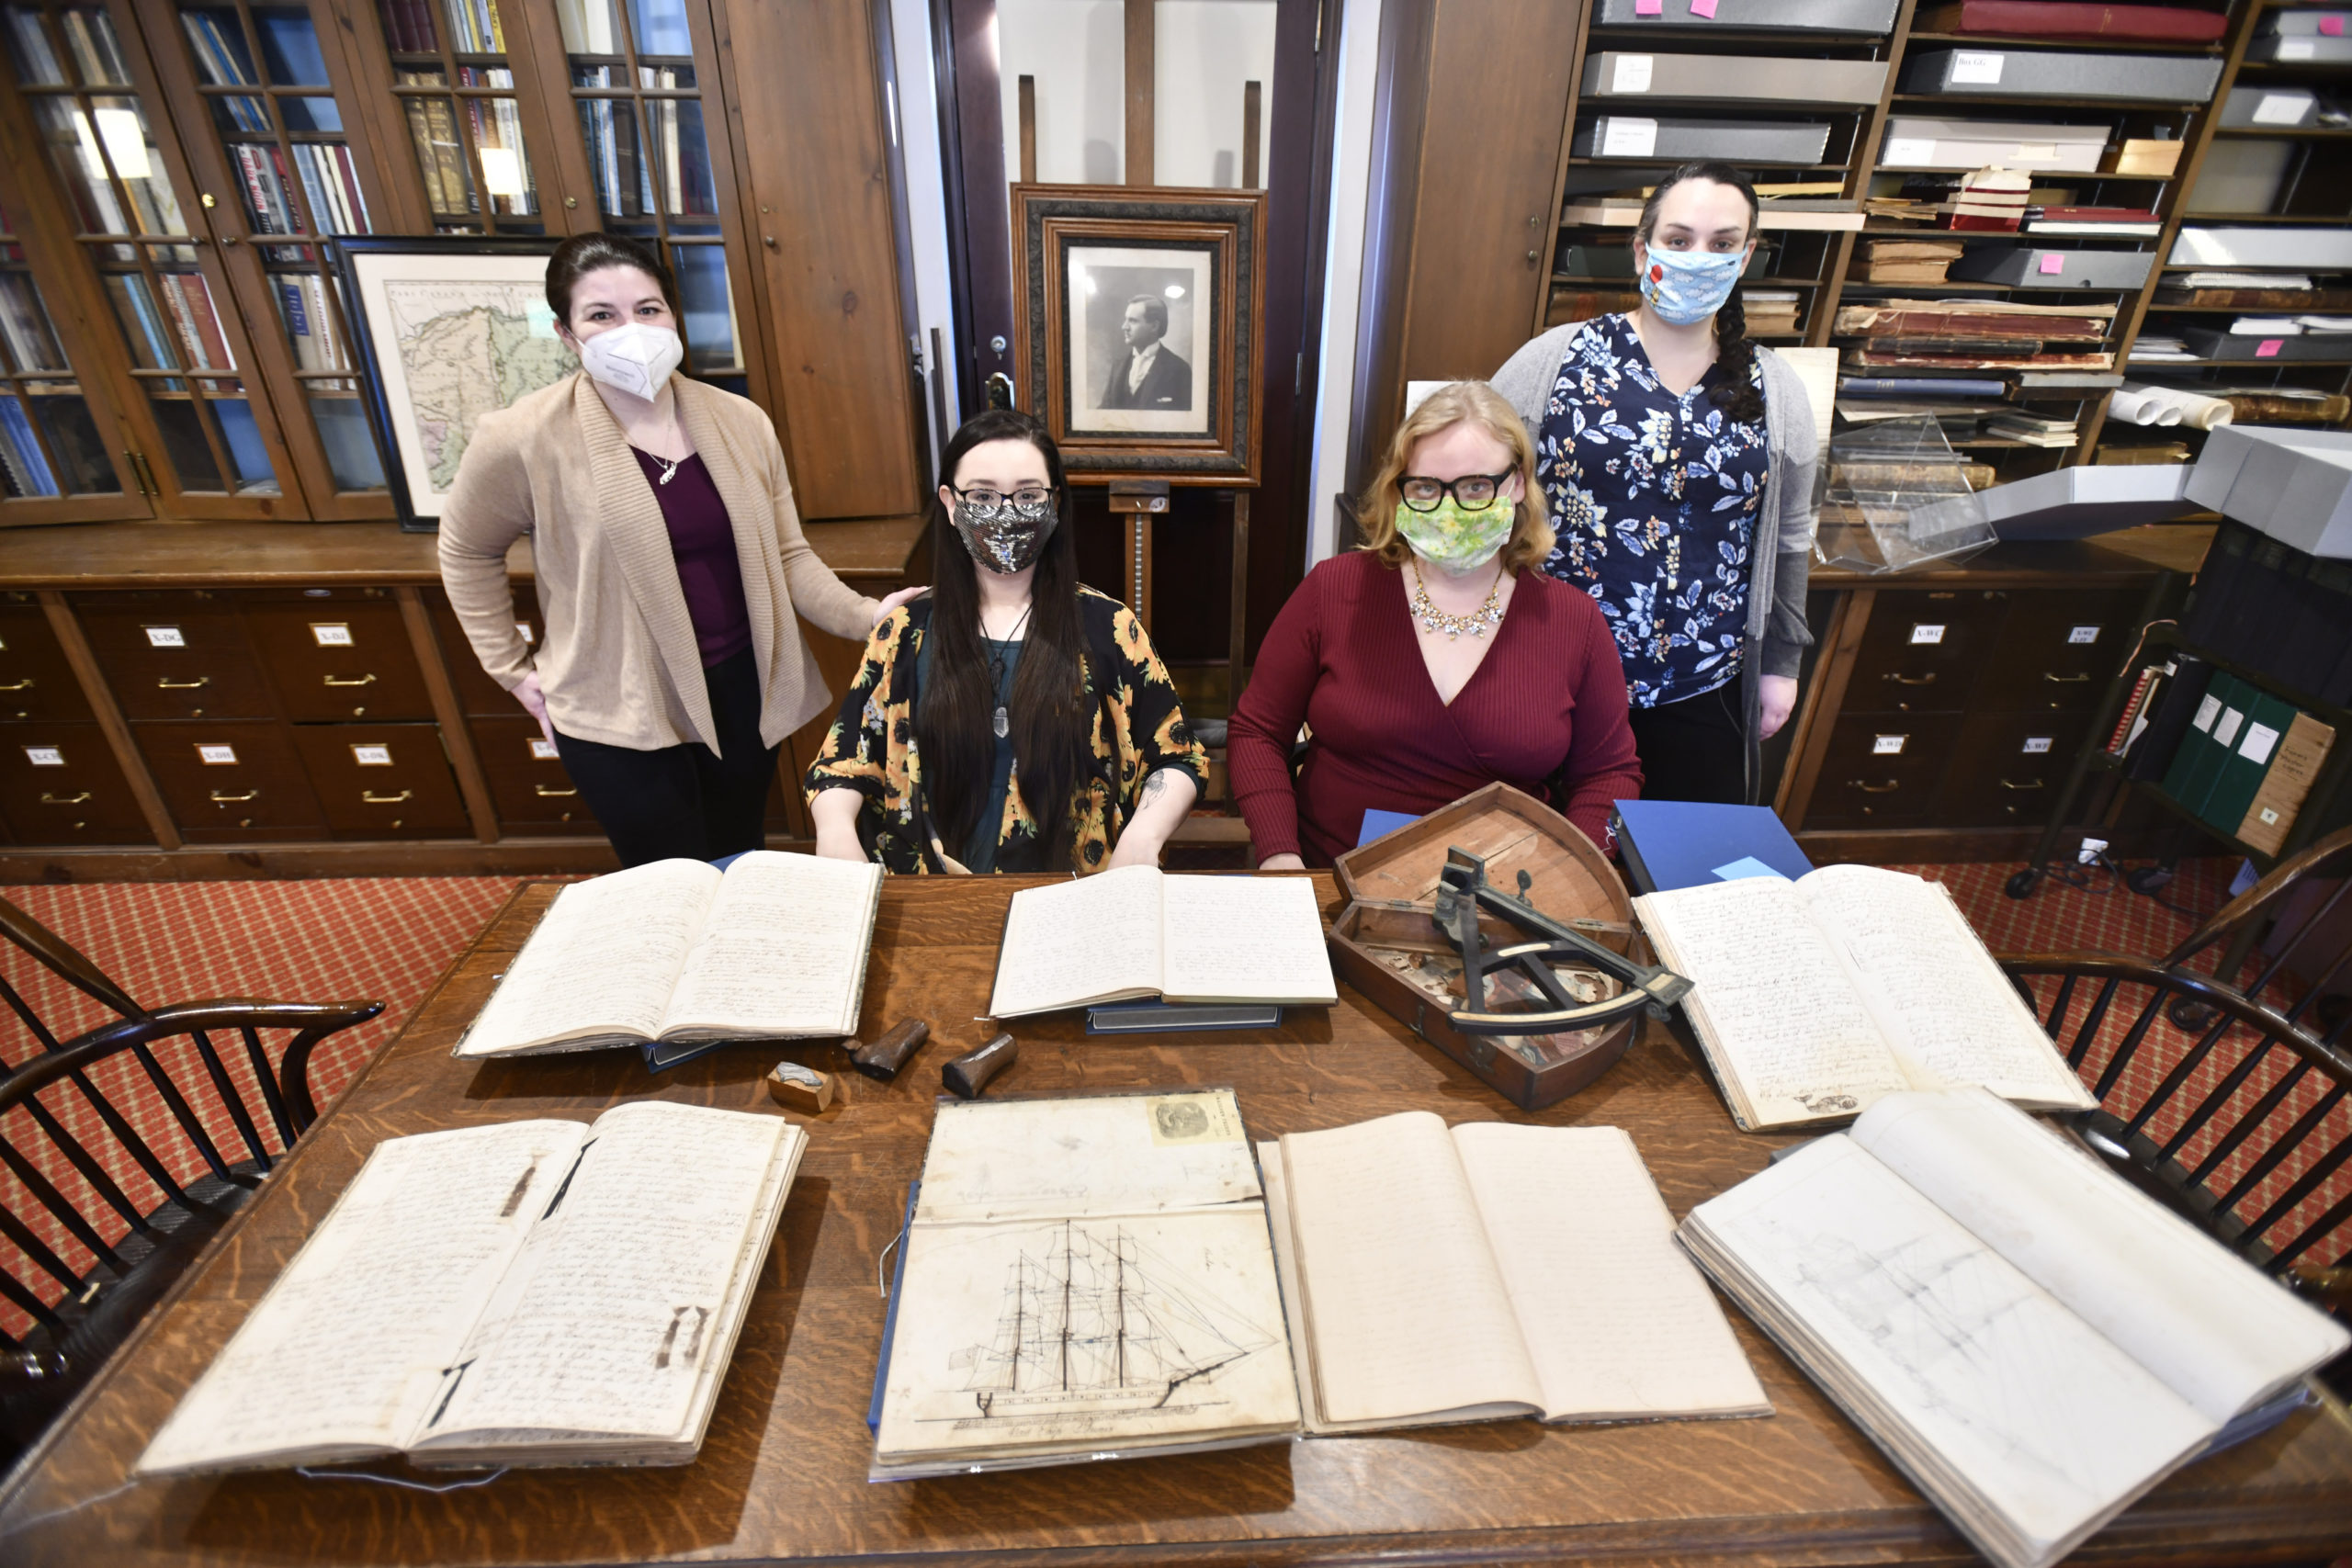 In the Long Island Collection at the East Hampton Library with some of the whaling logs they digitized are, standing, left to right, Andrea Meyer and Mayra Scanlon. Seated, seated, Tina Ambrosecchia and Julia Tyson.   DANA SHAW